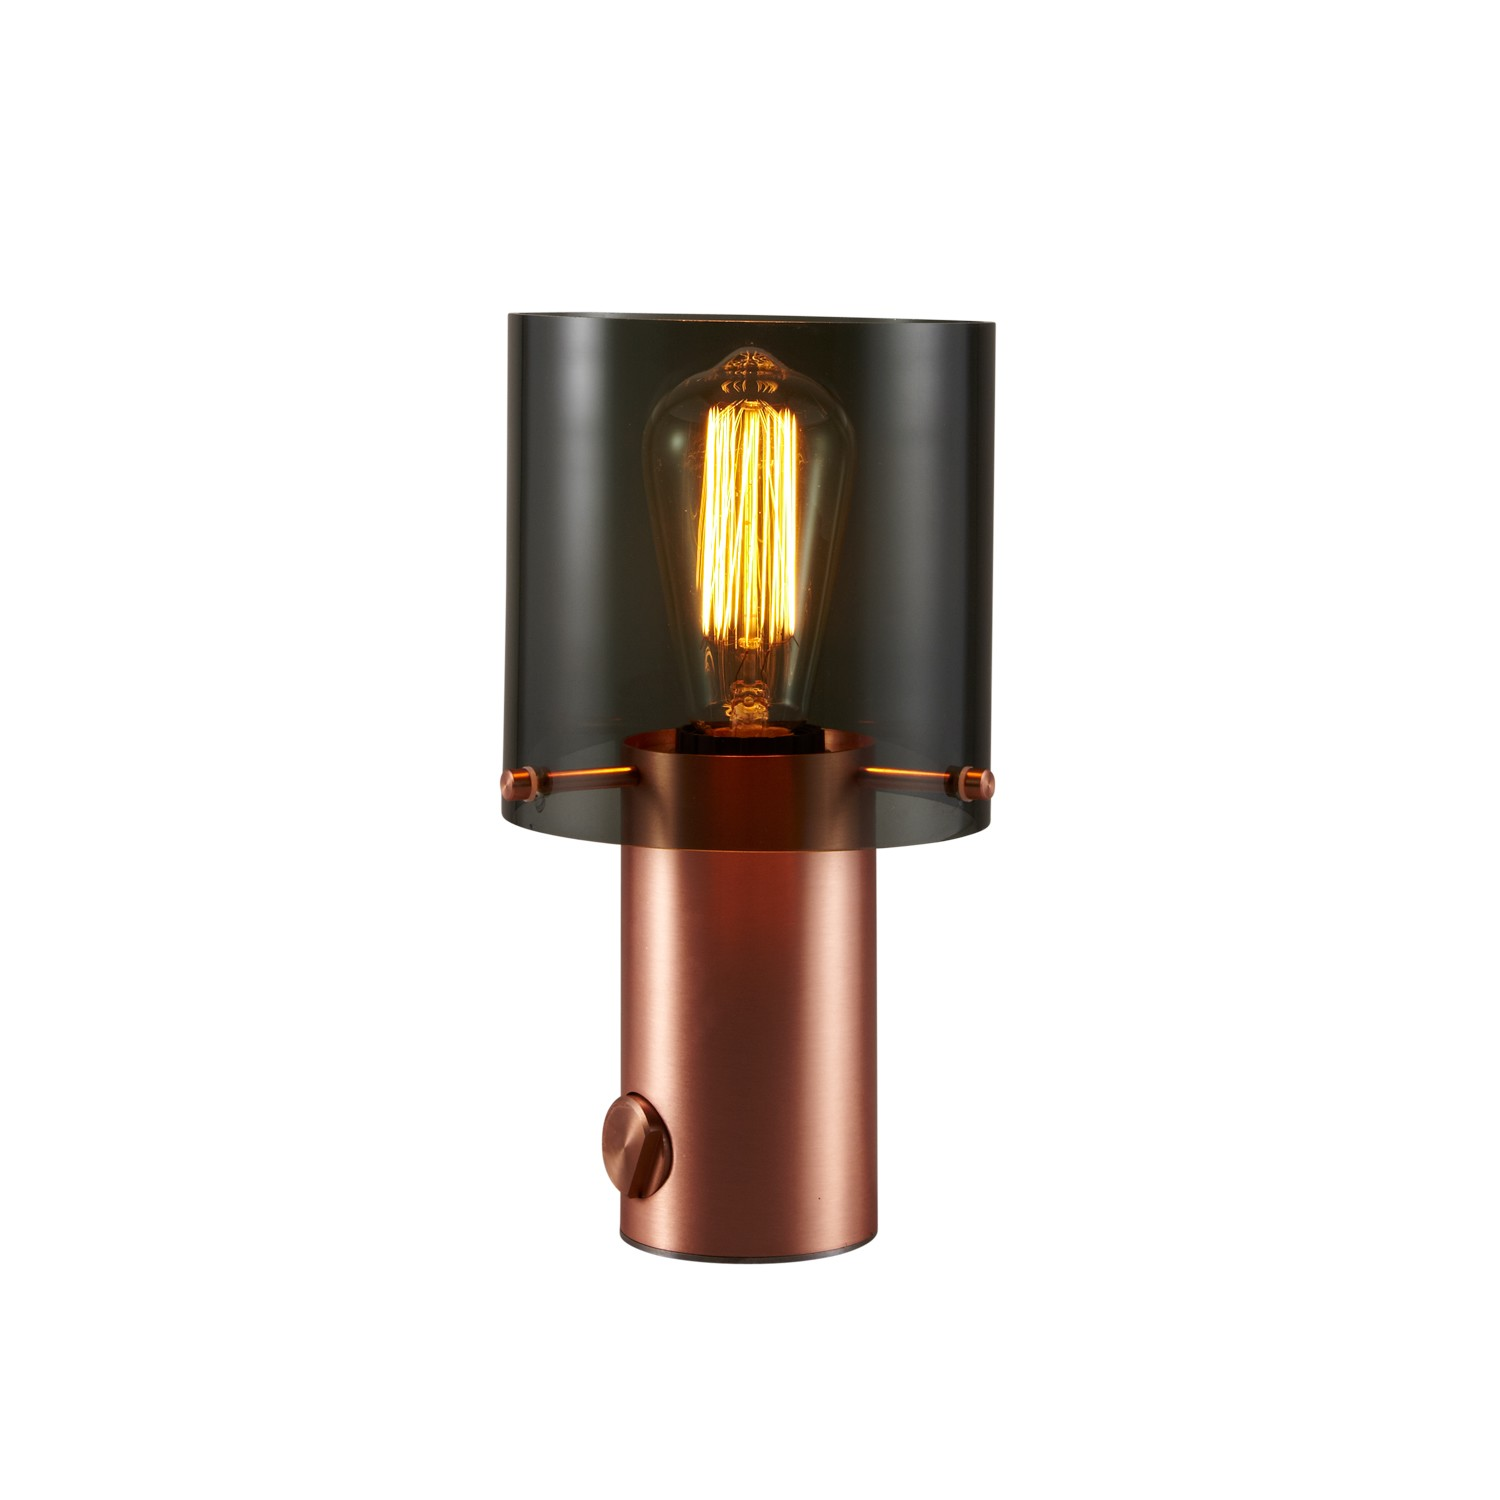 Walter Table Lamp Anthracite Glass & Copper, Large